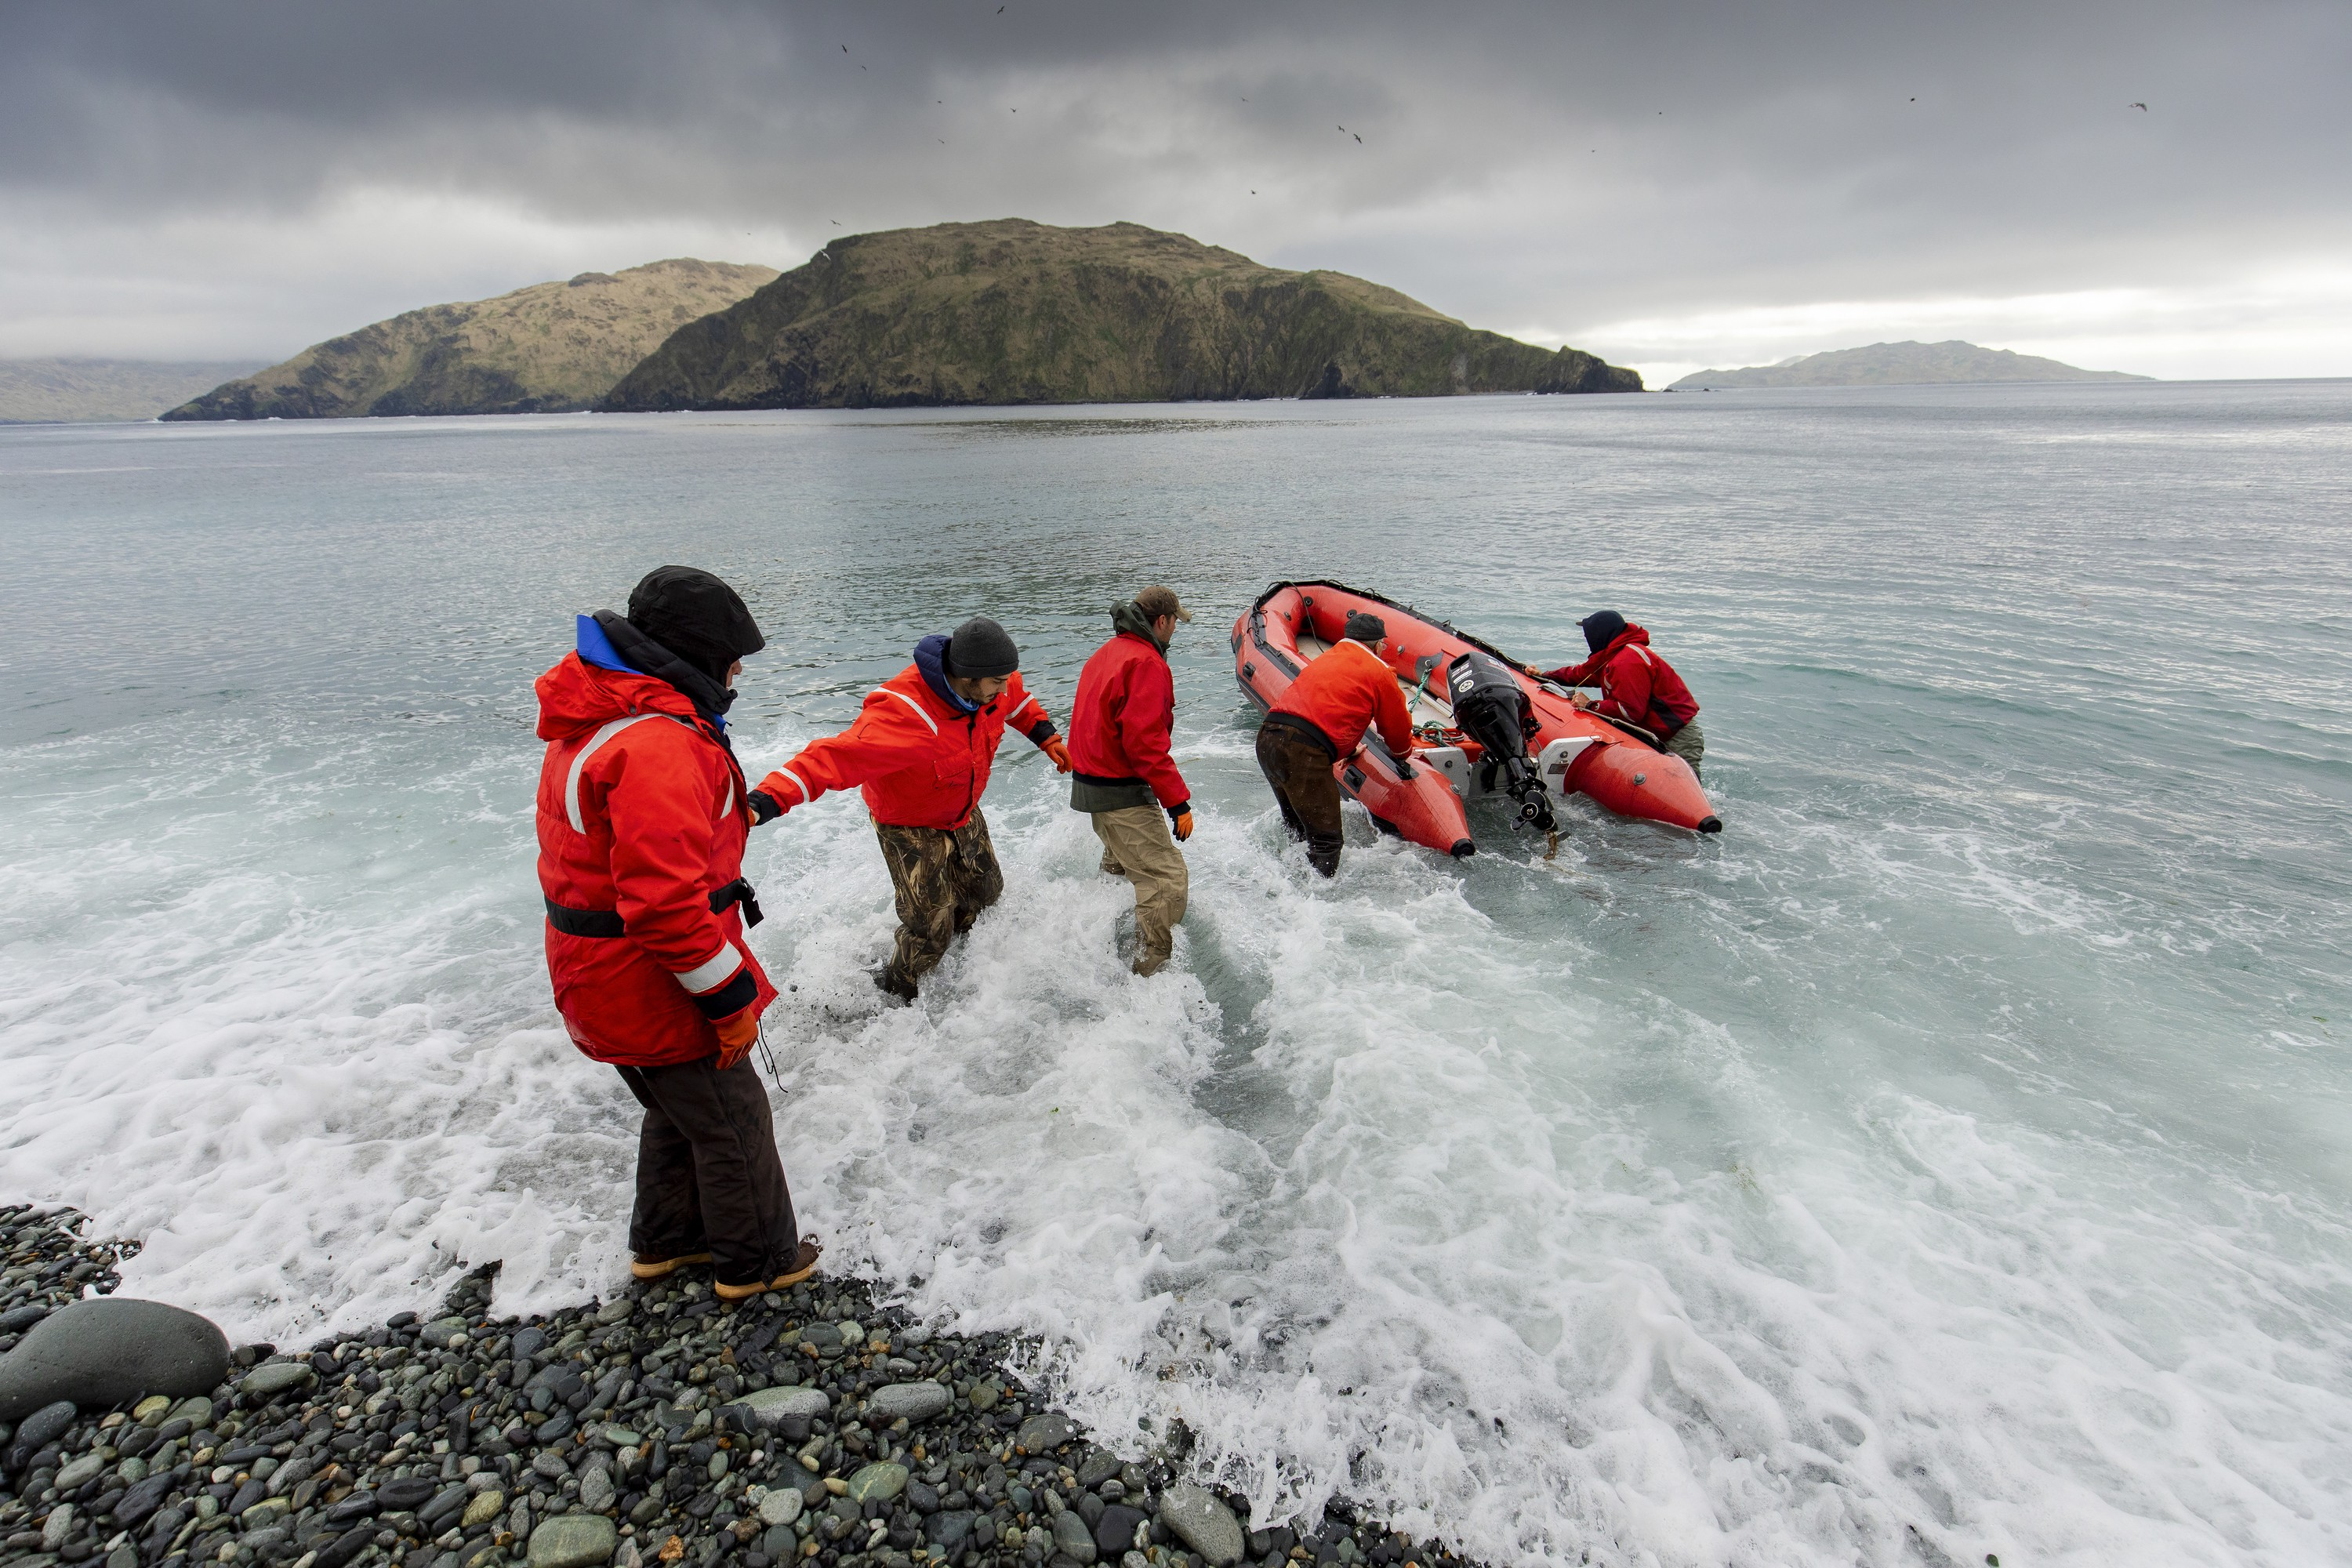 Action photo of a chain of people in bright orange survival float jackets turning an inflatable skiff back into the ocean from a rocky shore.